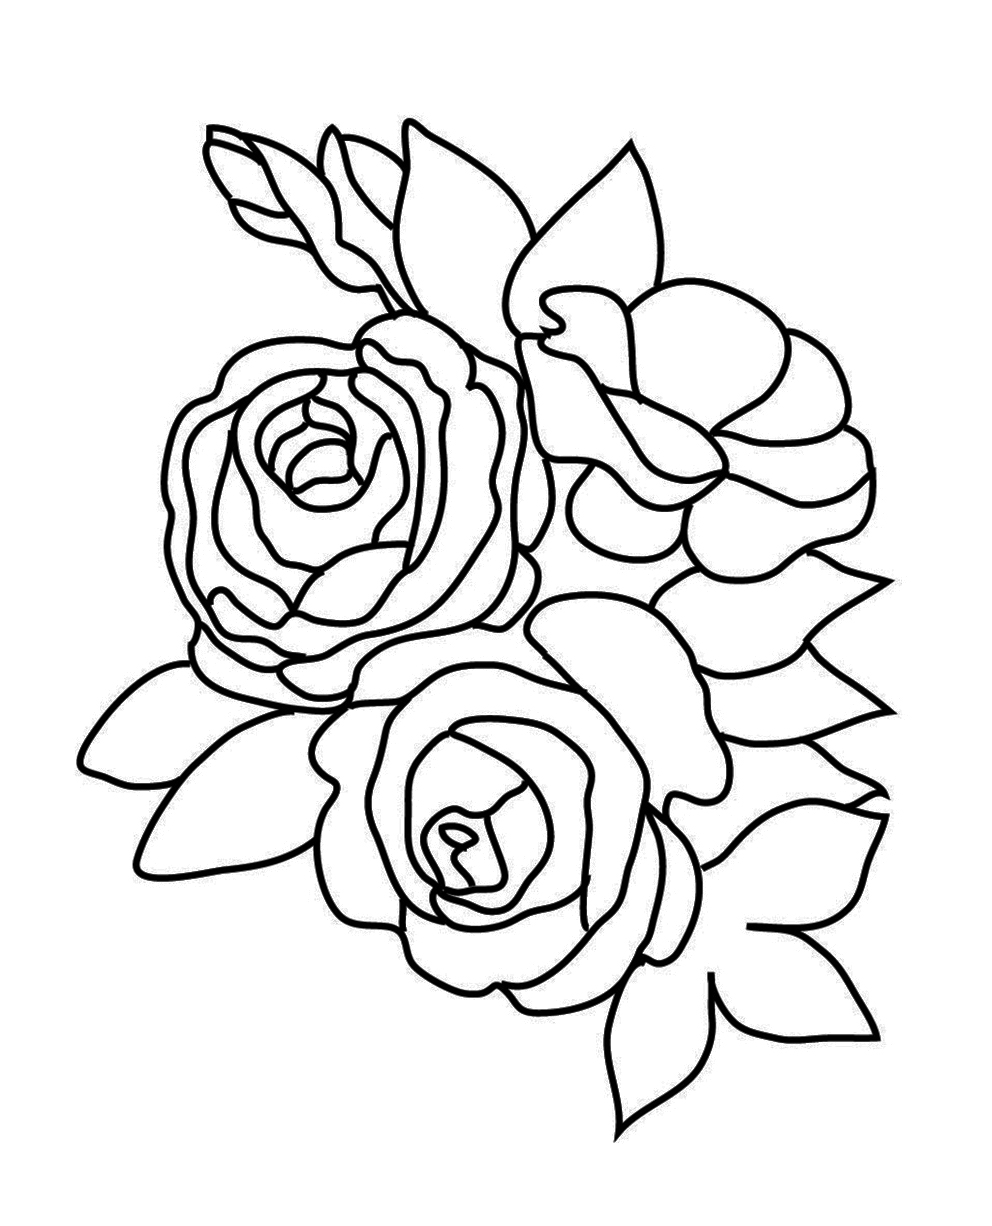 rose to color free printable roses coloring pages for kids to rose color 1 1